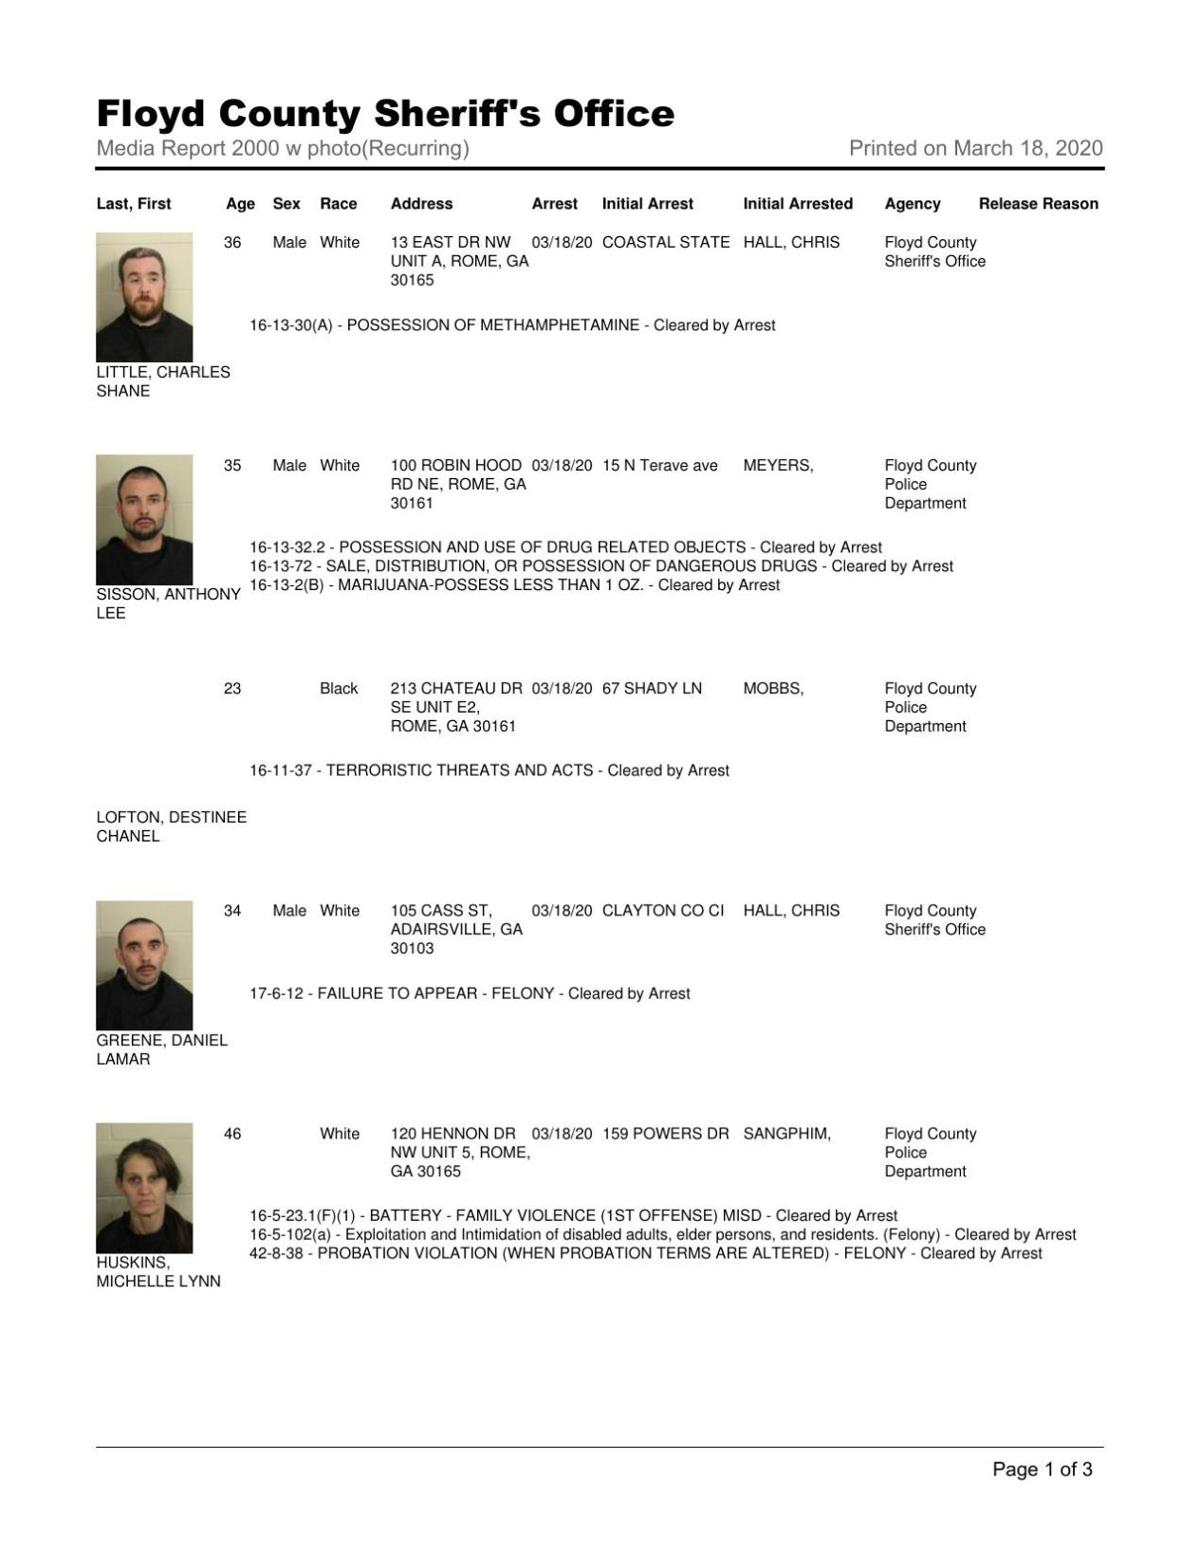 Floyd County Jail report for 8 p.m. Wednesday March 18